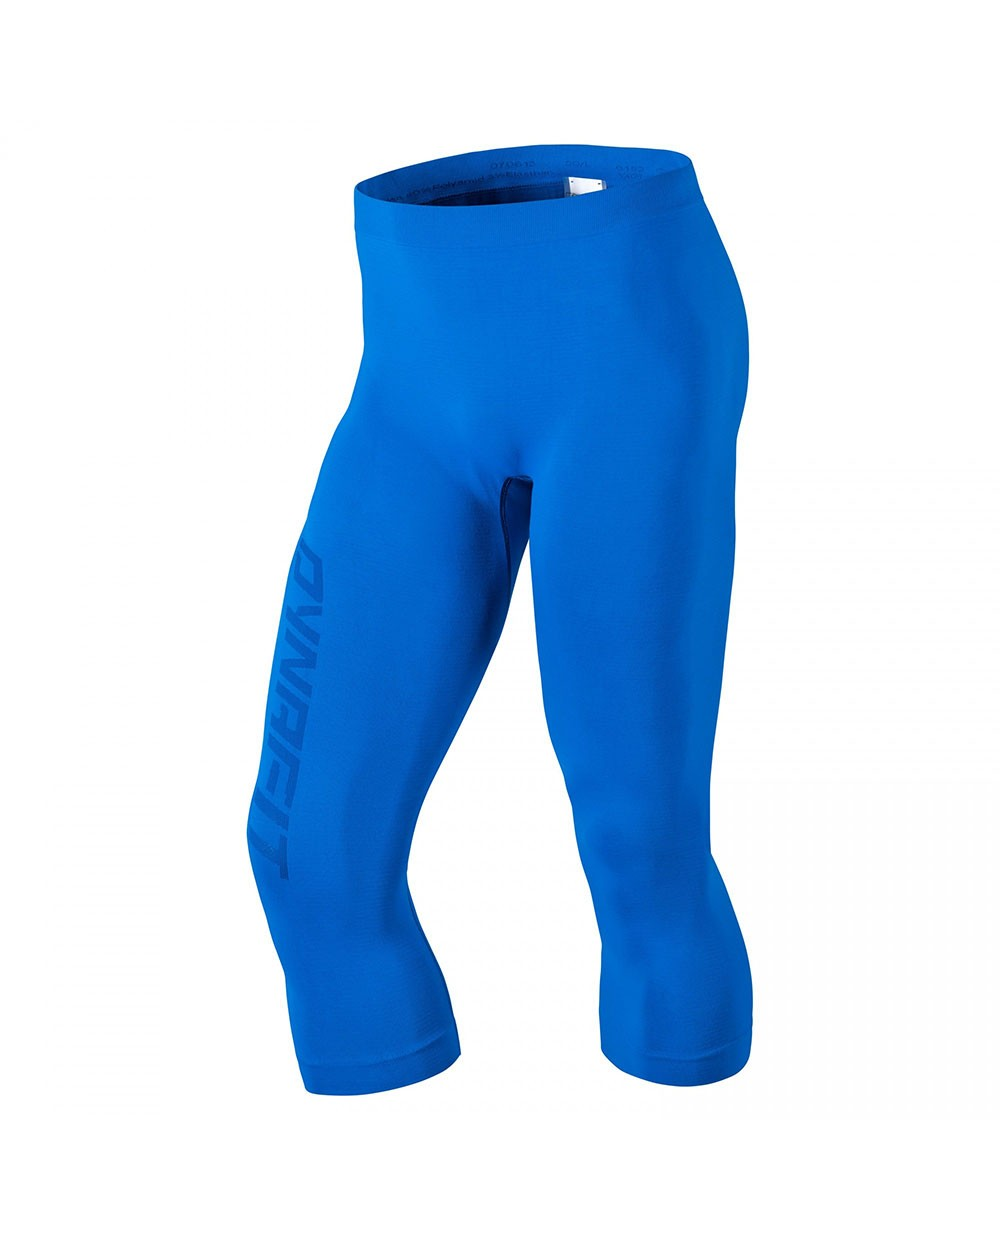 DYNAFIT - PERFORMANCE DRYARN M TIGHTS - MEN